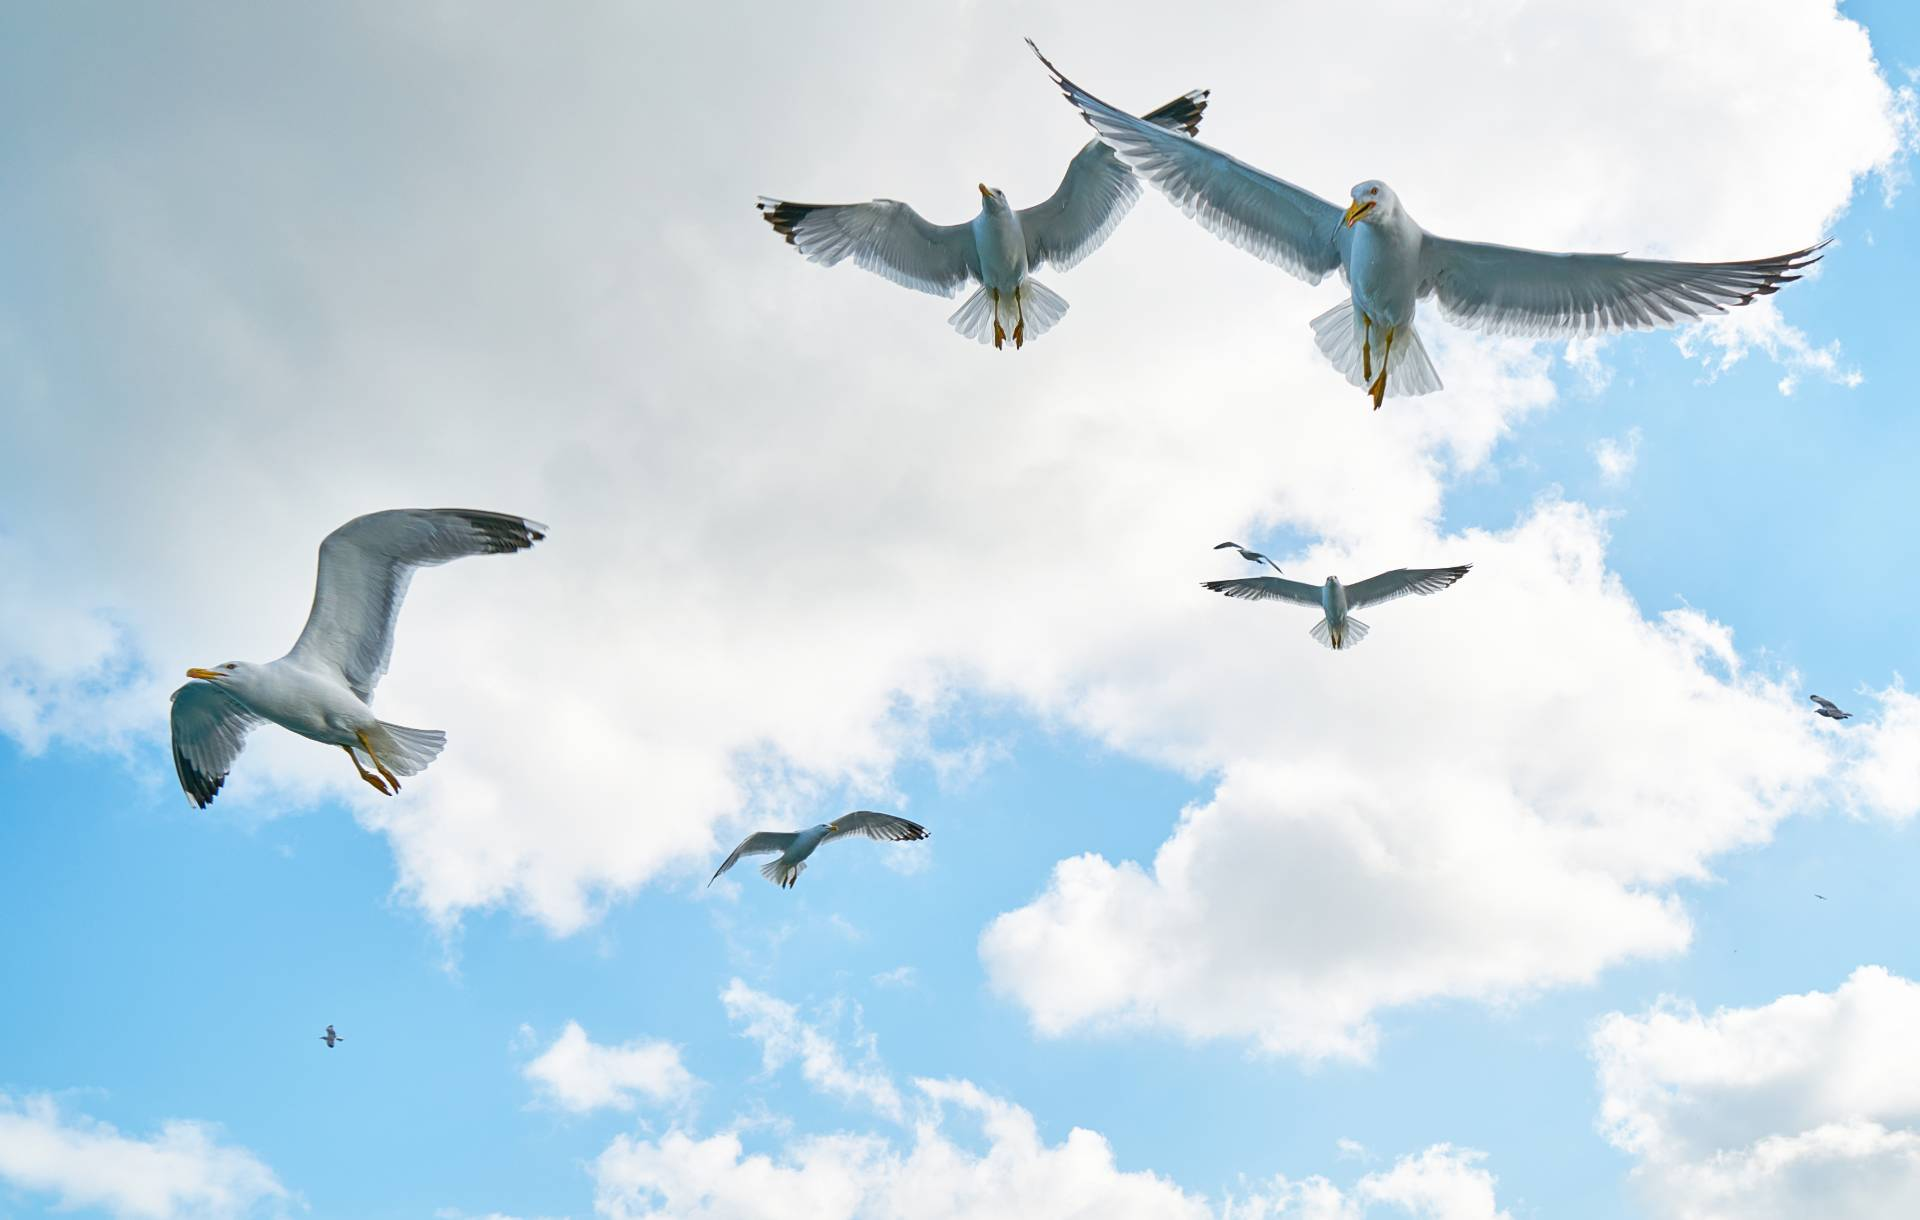 Seagulls flying through a cloudy blue sky. Photo courtesy of Engin Akyurt from Pexels.